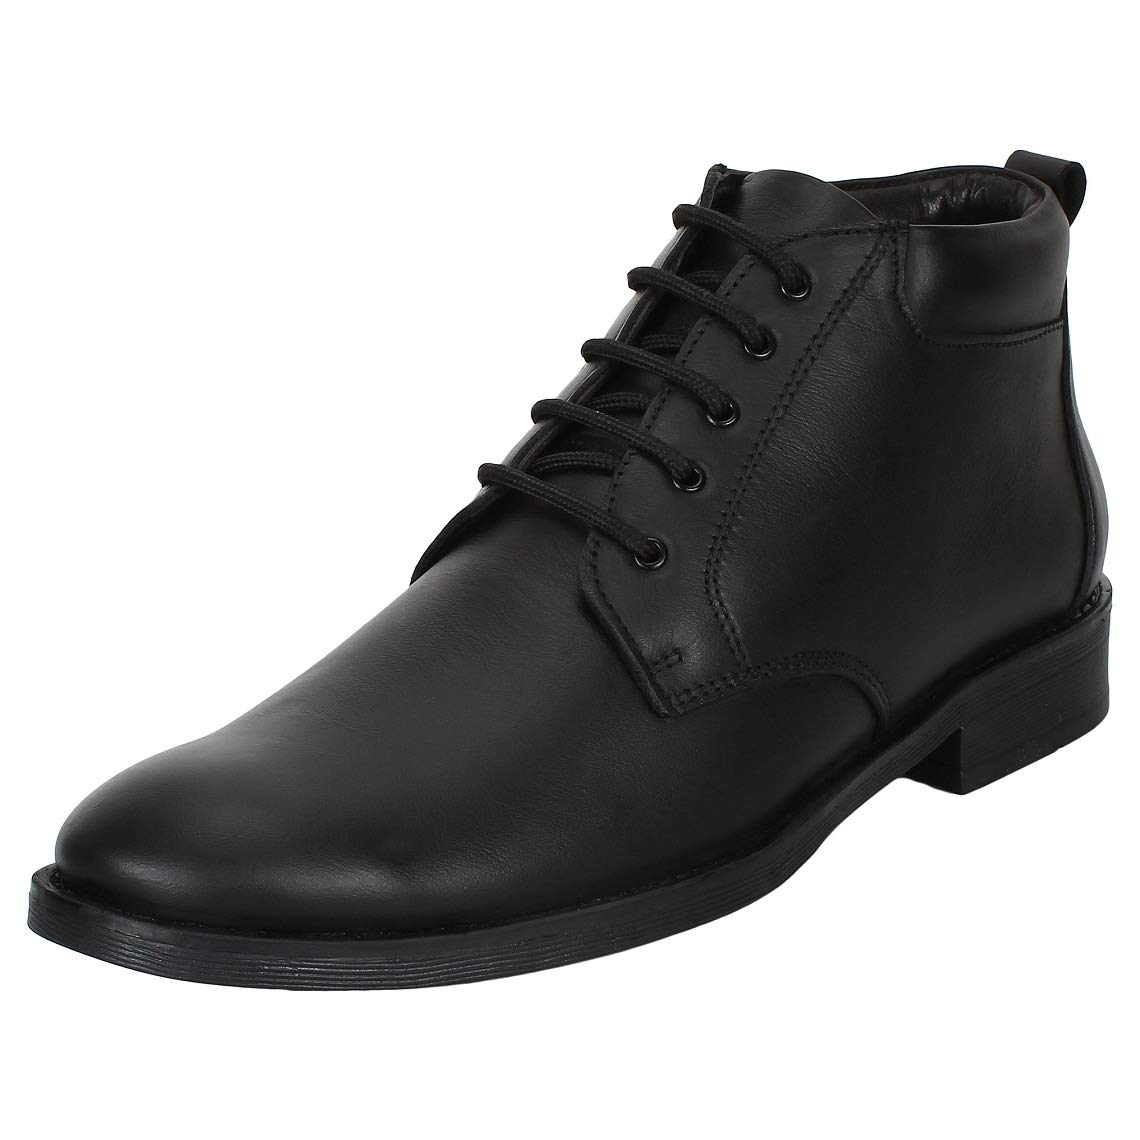 a74f15a03f SeeandWear Ankle Black Formal Shoes for Men: Buy Online at Low Prices in  India - Amazon.in